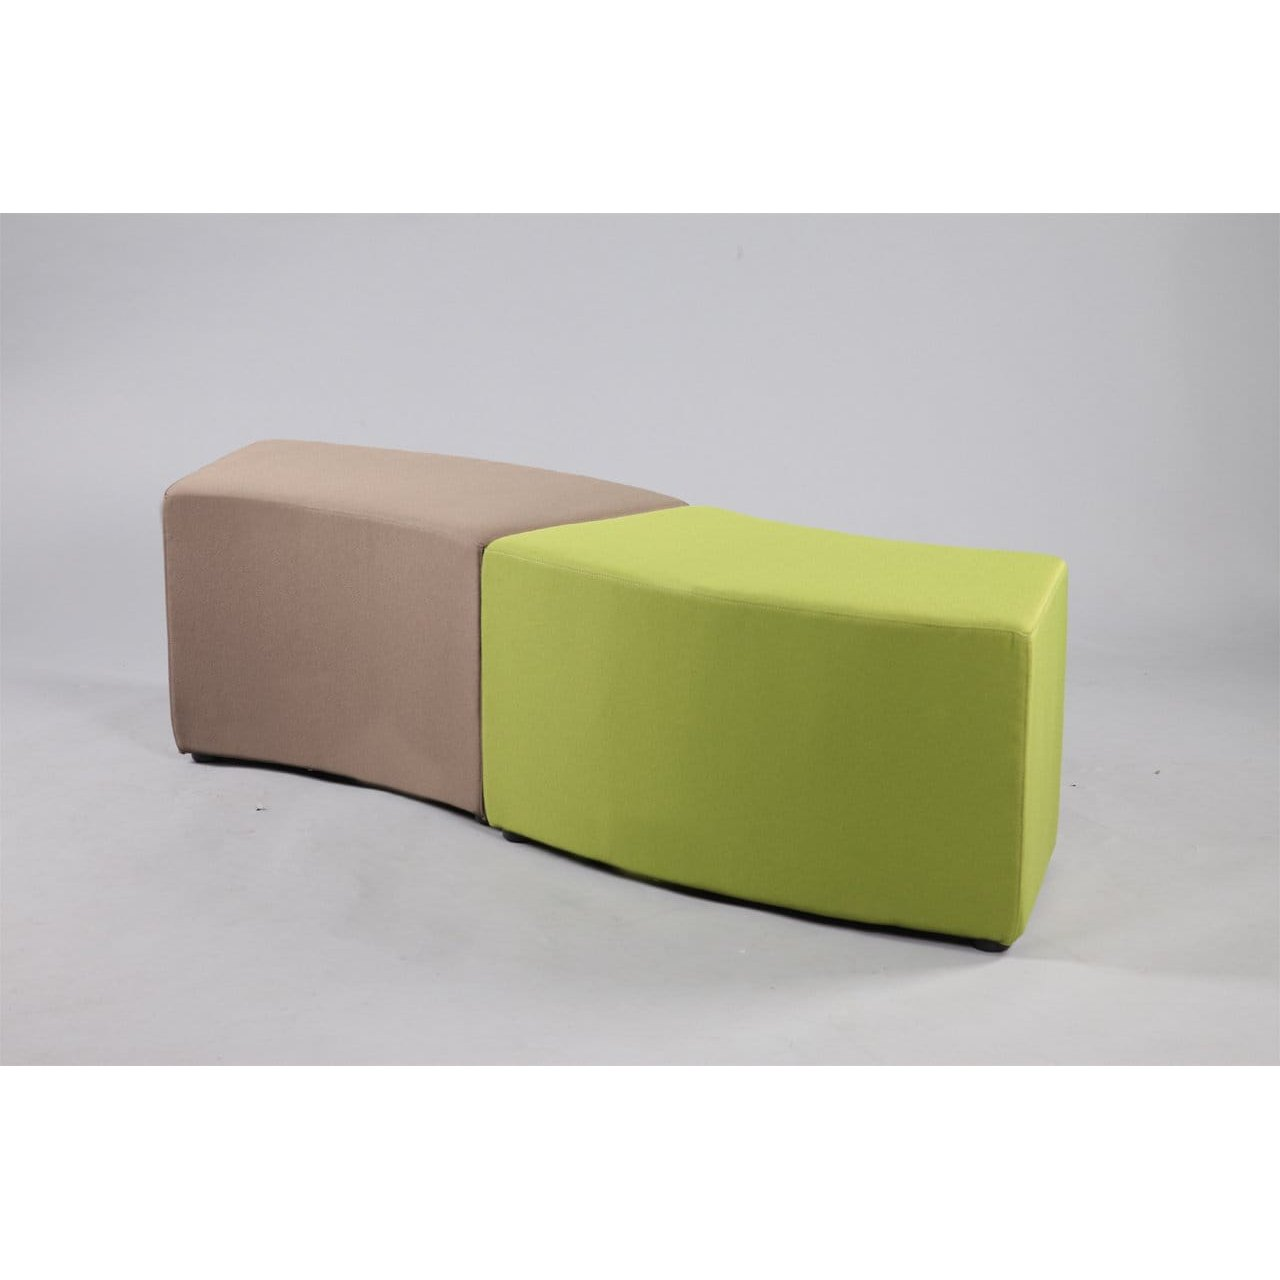 Kismet Modular Pouf | Comfort Design - The Chair & Table People